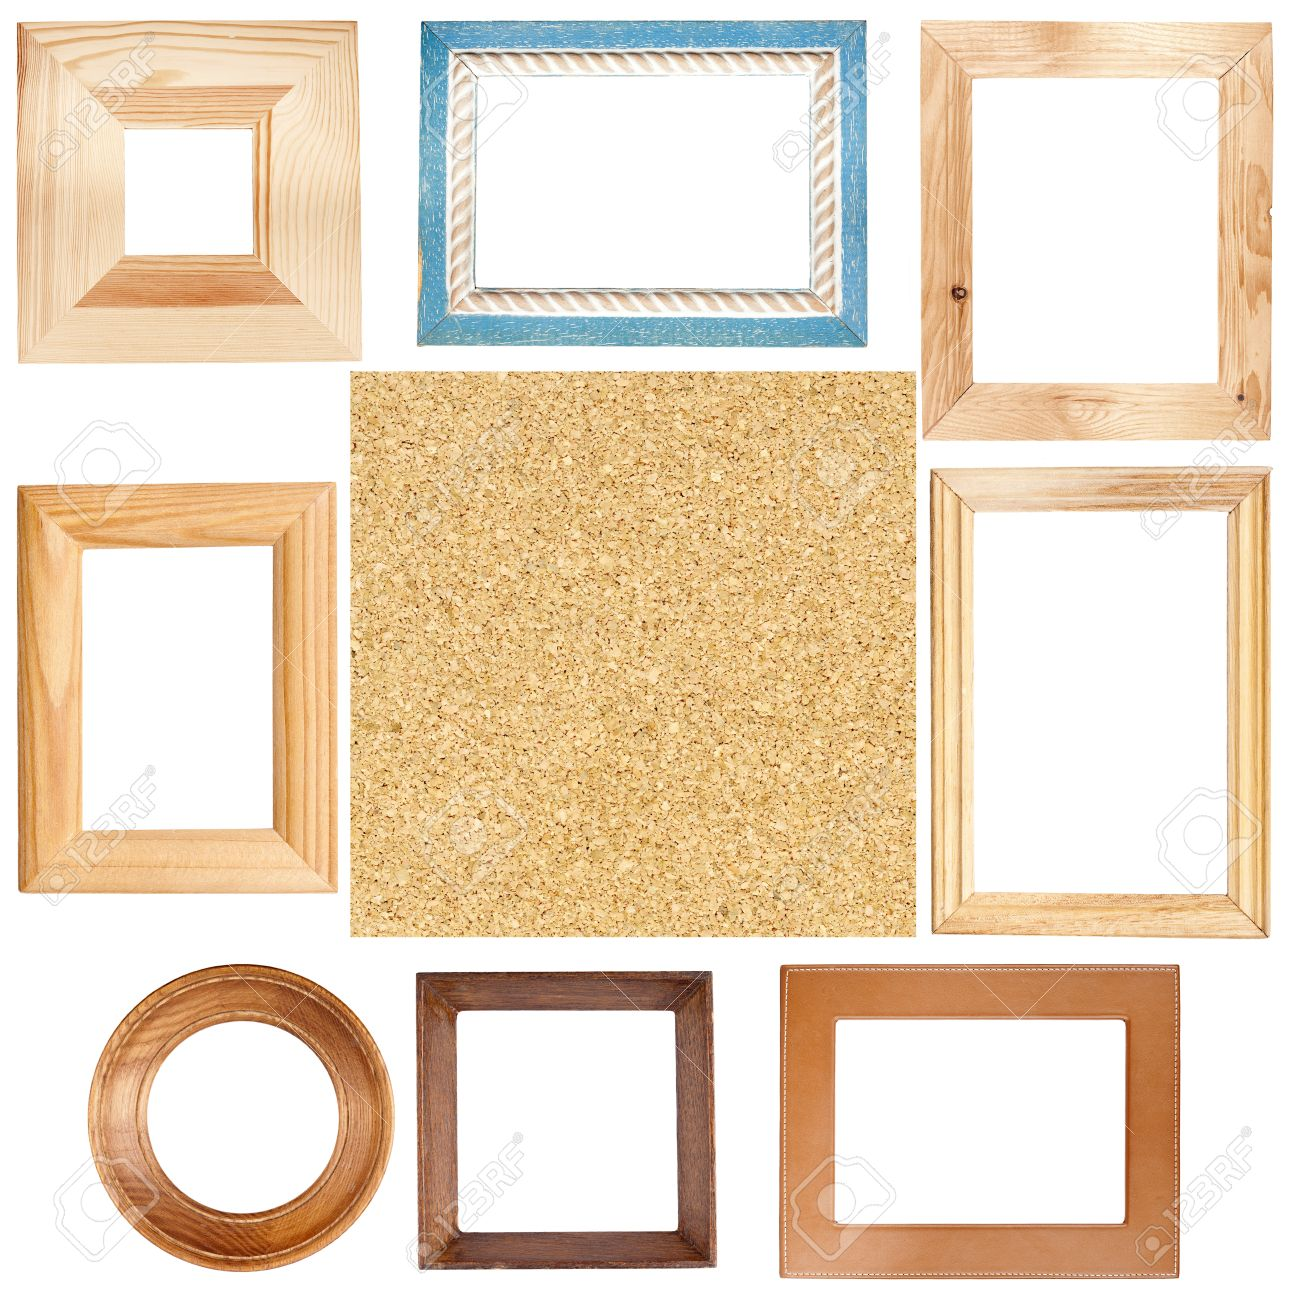 big size set of picture frames and cork board texture stock photo 15843541